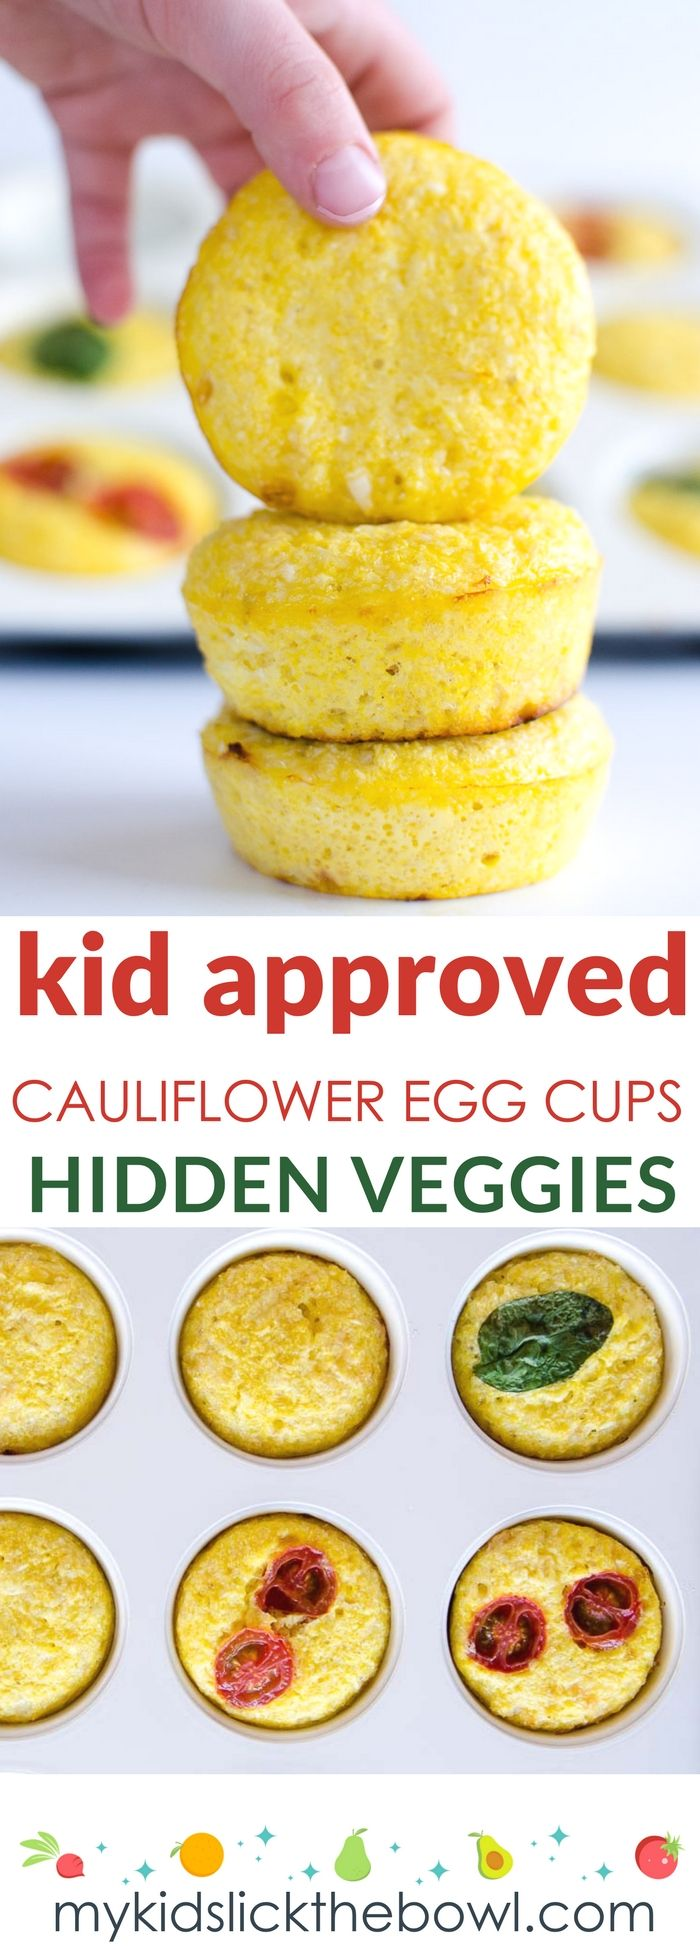 Simple Egg Muffins with Cauliflower and Cheese. Egg cups are perfect for kids and baby led weaning. A Healthy breakfast or snack, packed with veggies picky eaters will never notice